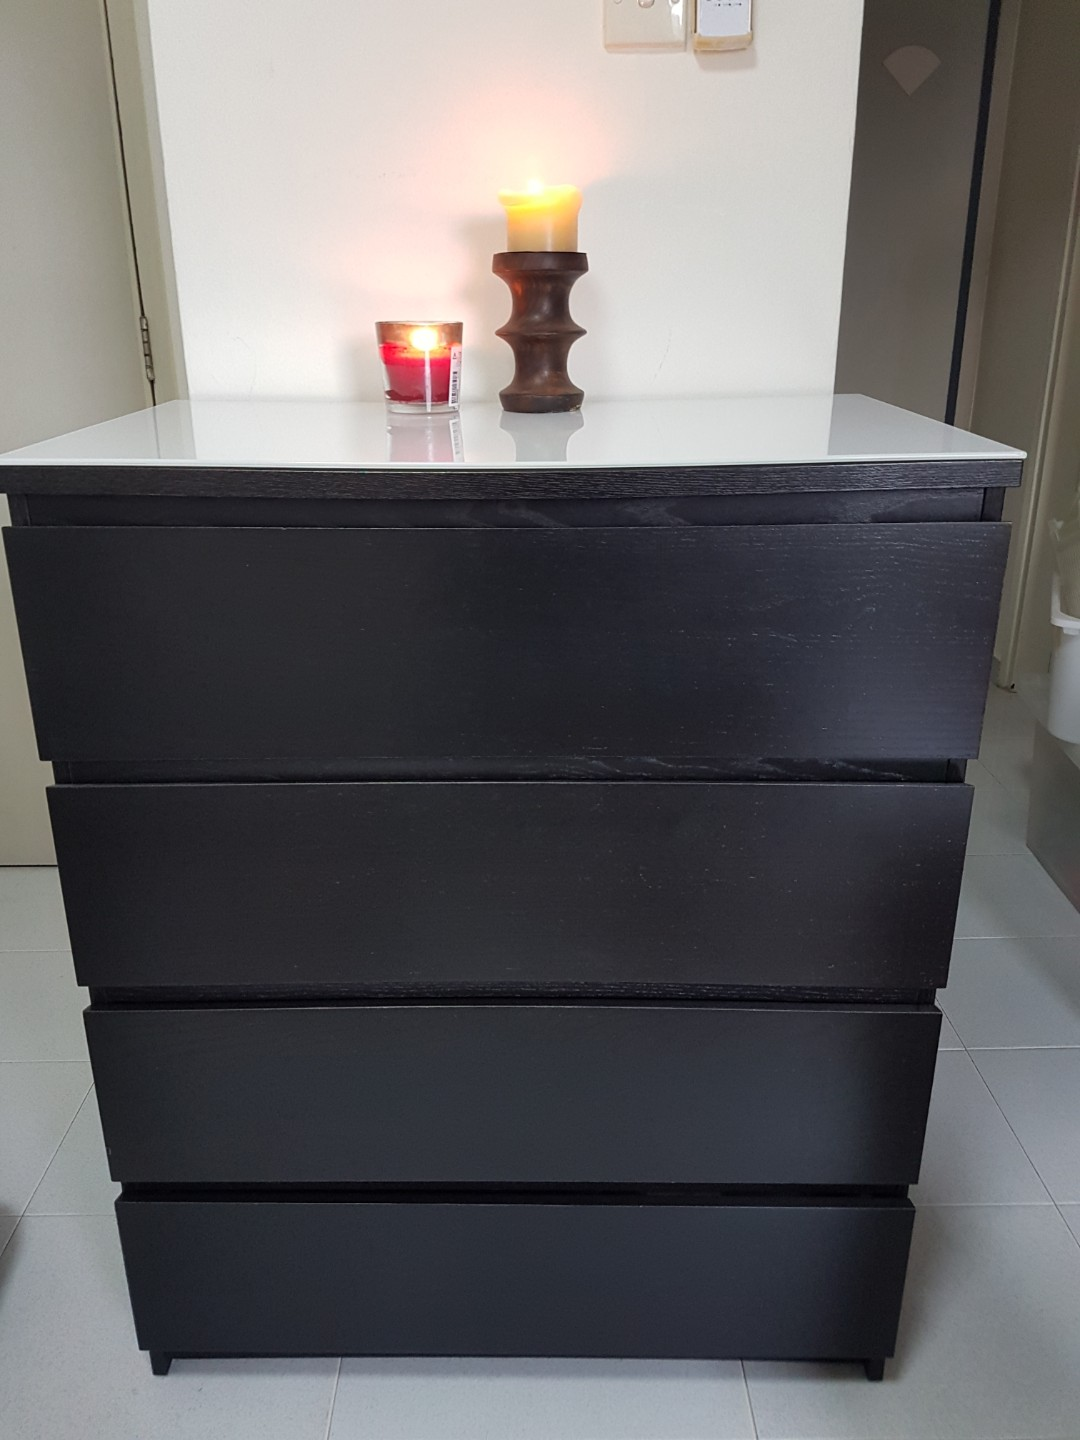 Ikea Malm Chest 4 Drawers With Glass Top, Furniture, Shelves U0026 Drawers On  Carousell